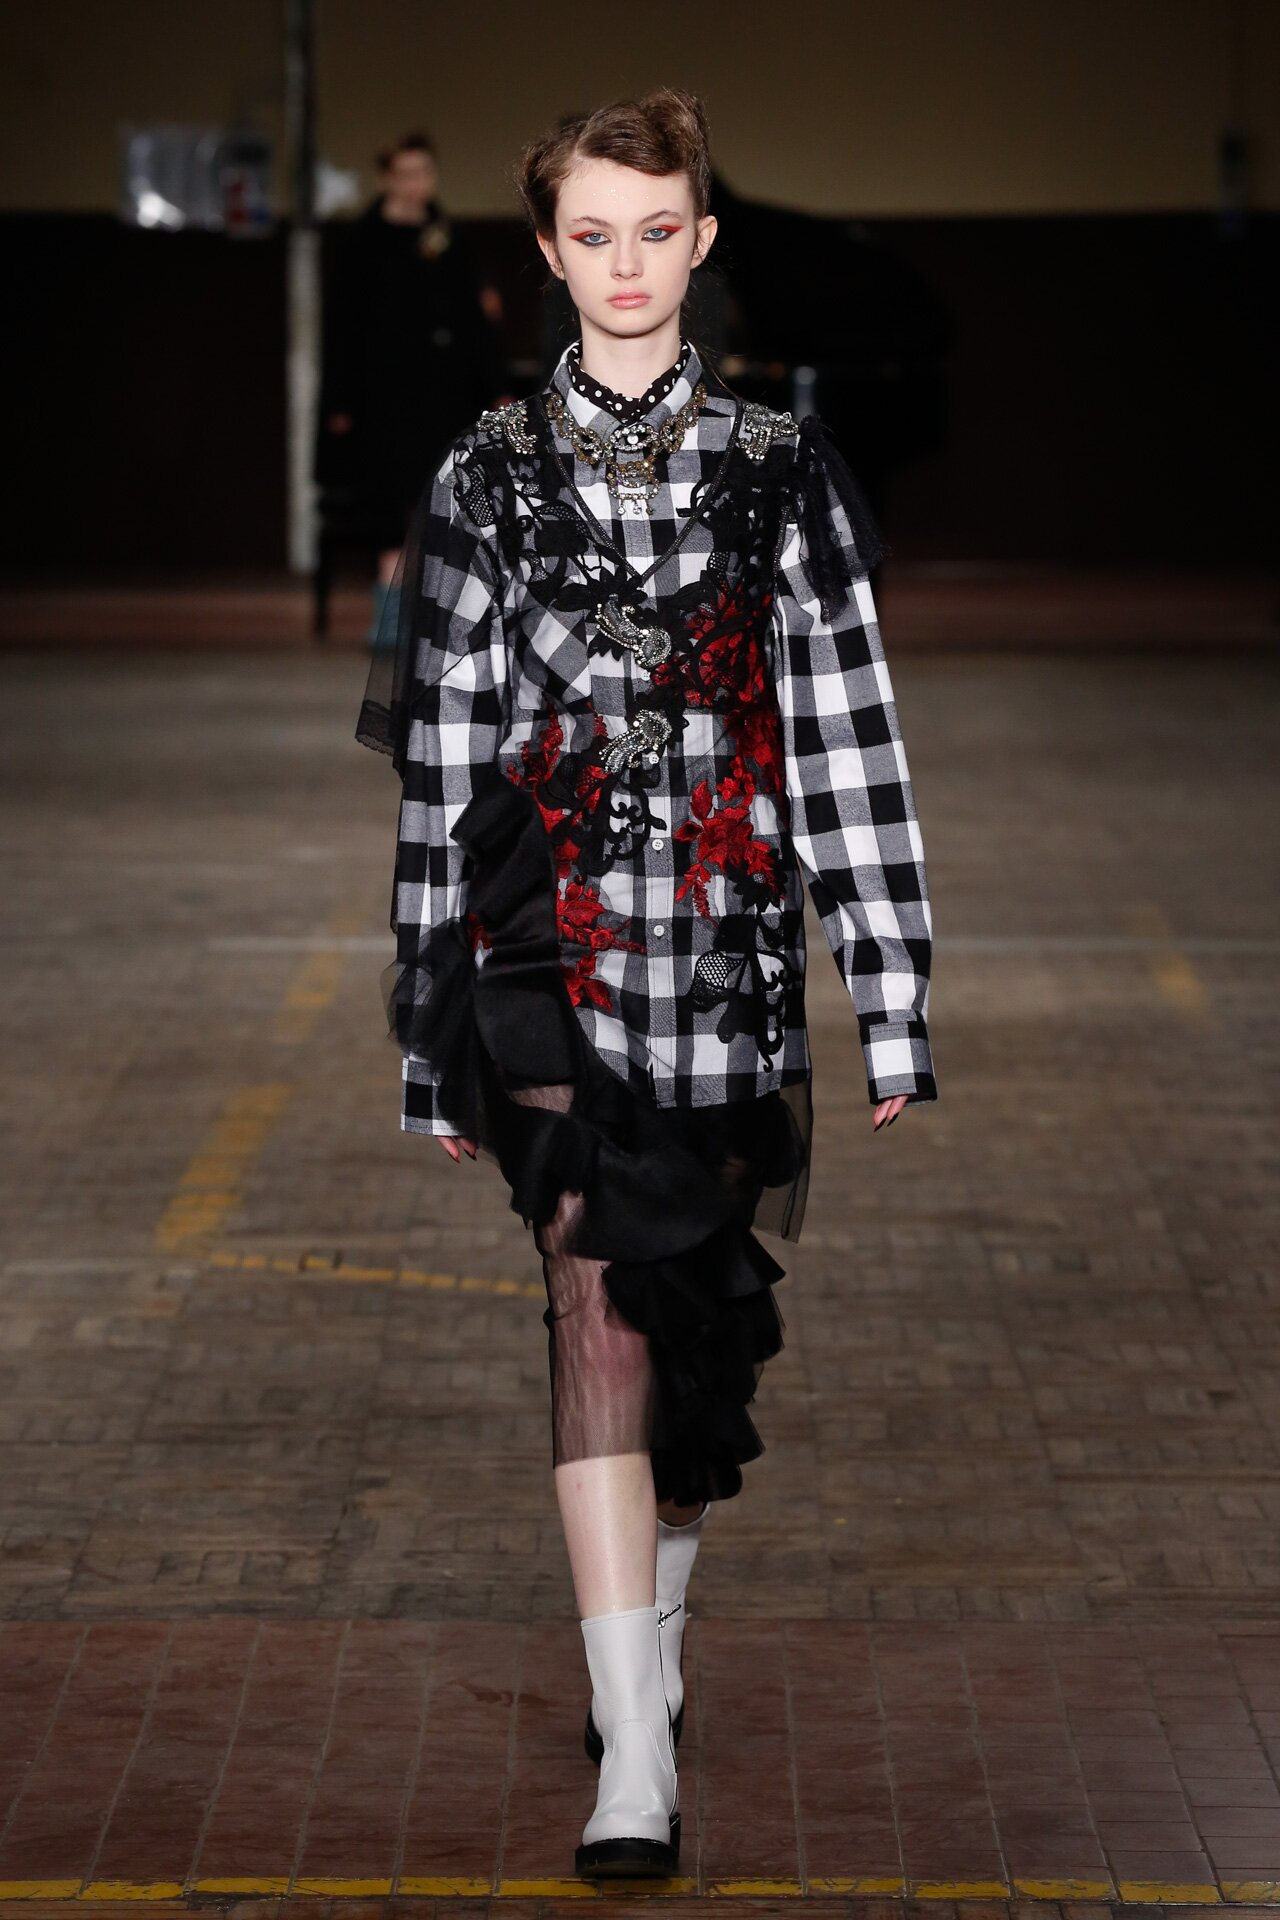 Antonio Marras Fall Winter 2018-19 Fashion Show Look 18